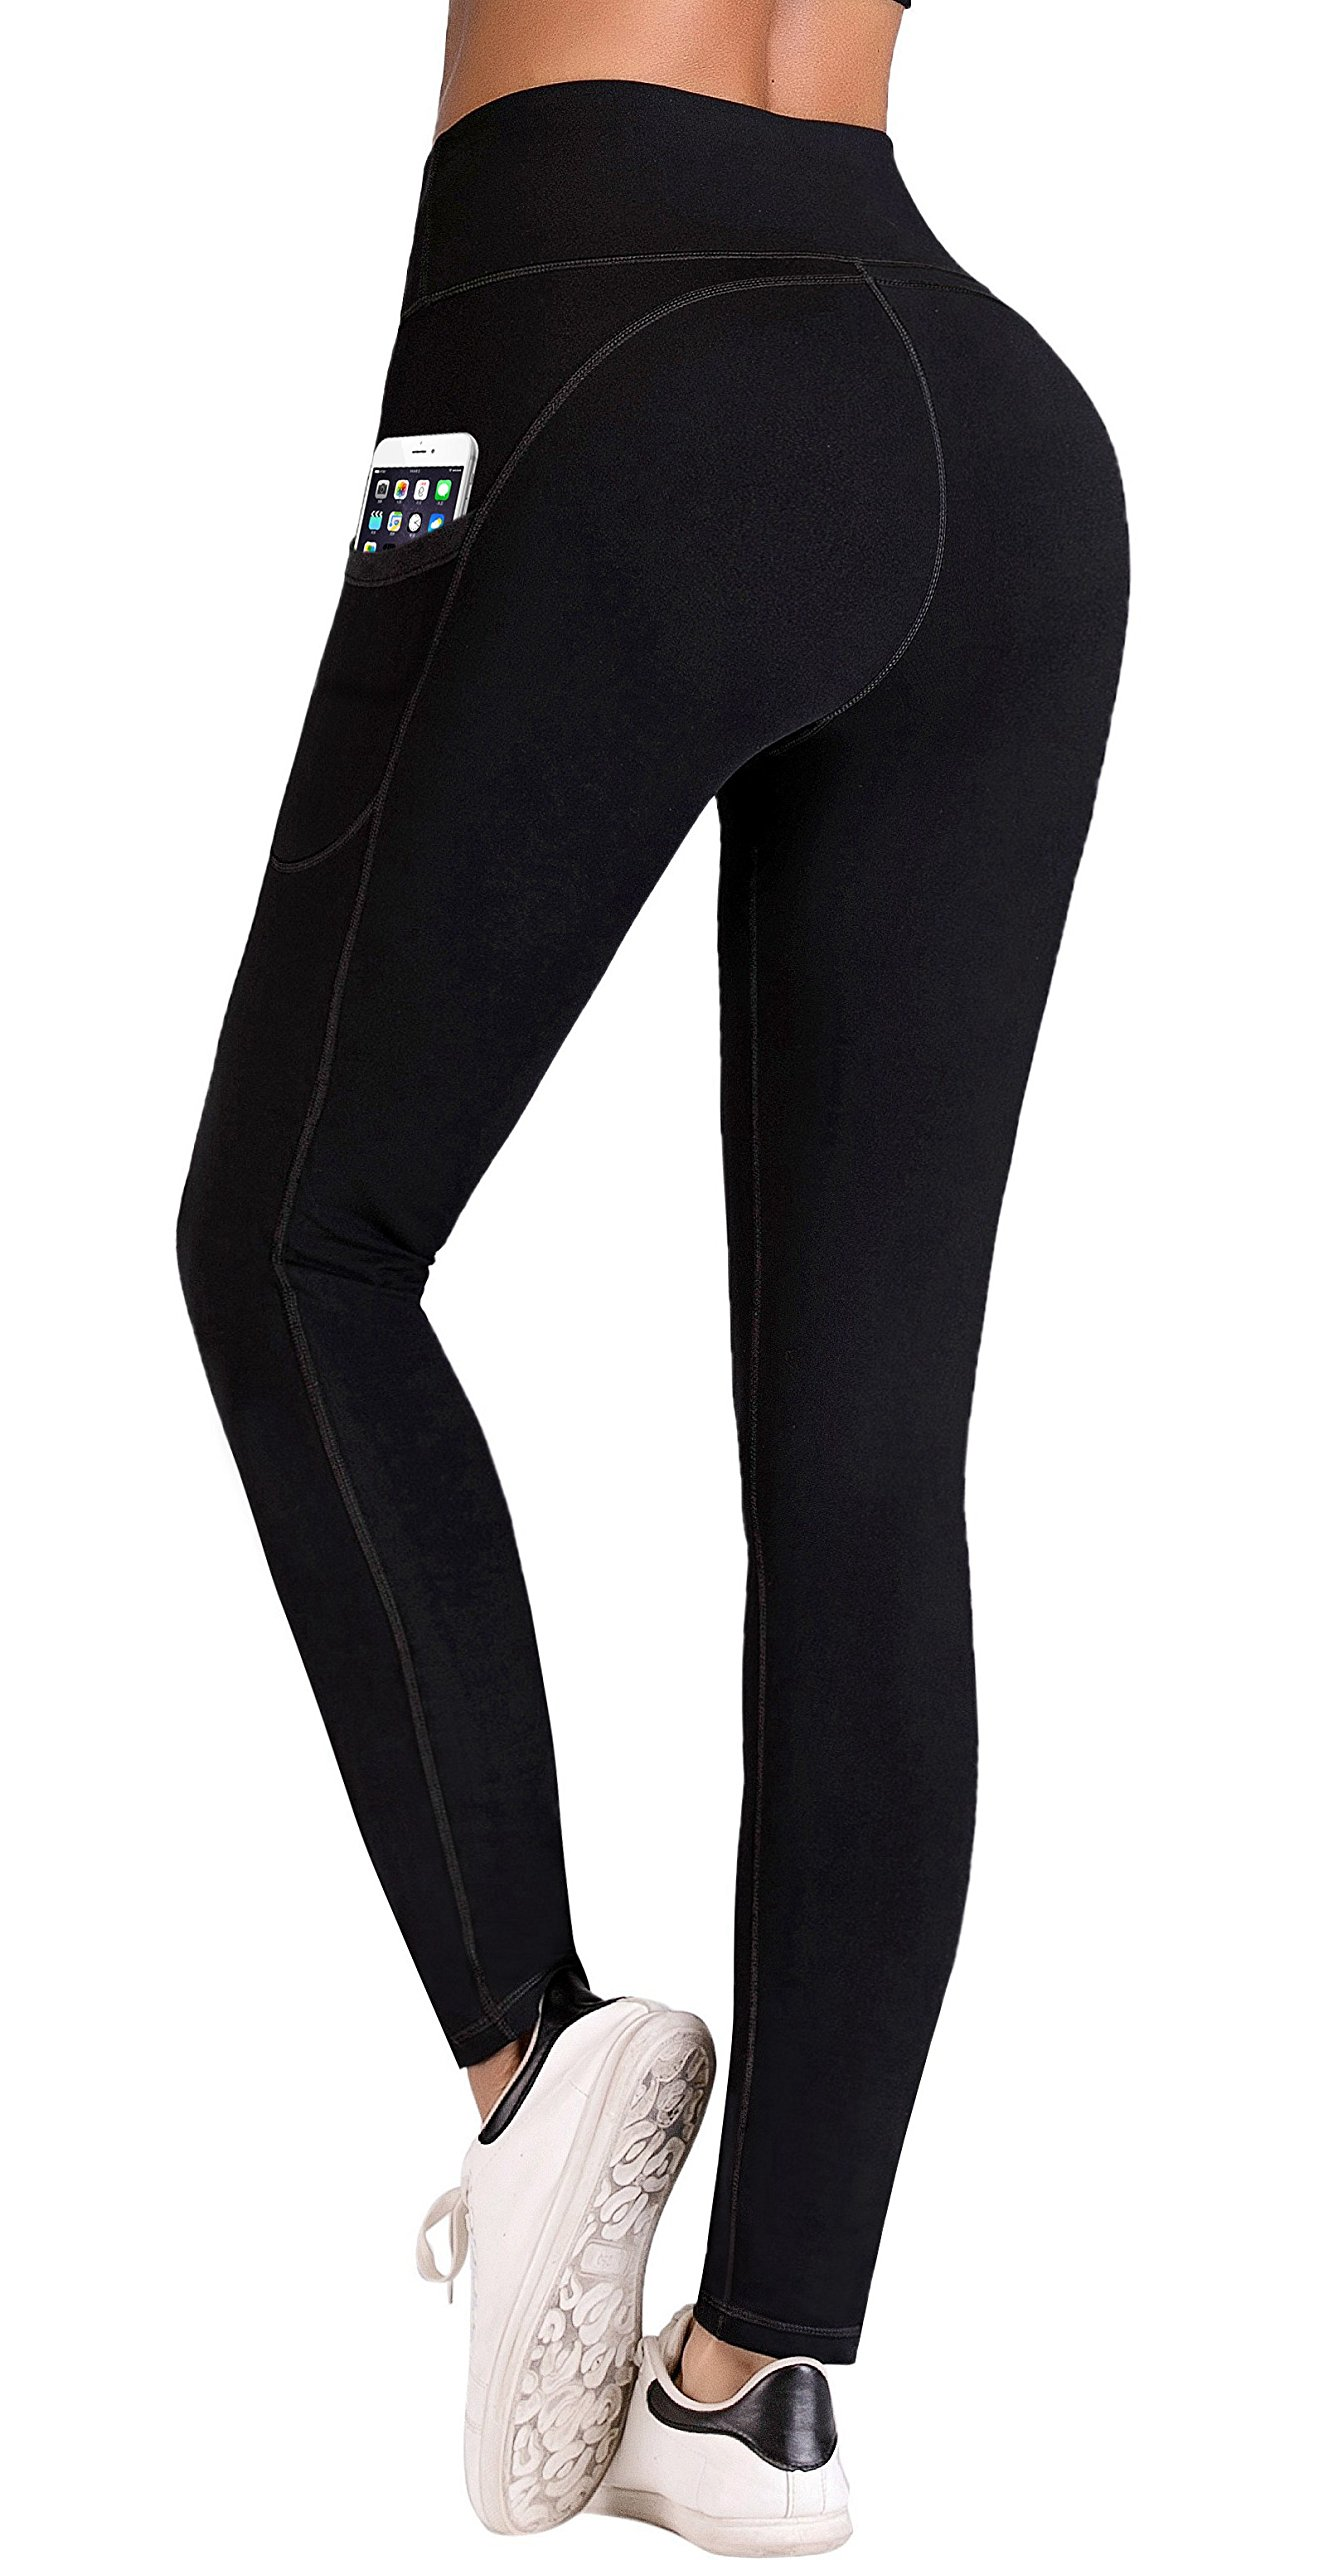 816%2BnIB 1TL - IUGA Yoga Pants with Pockets, Workout Running Leggings with Pockets for Women